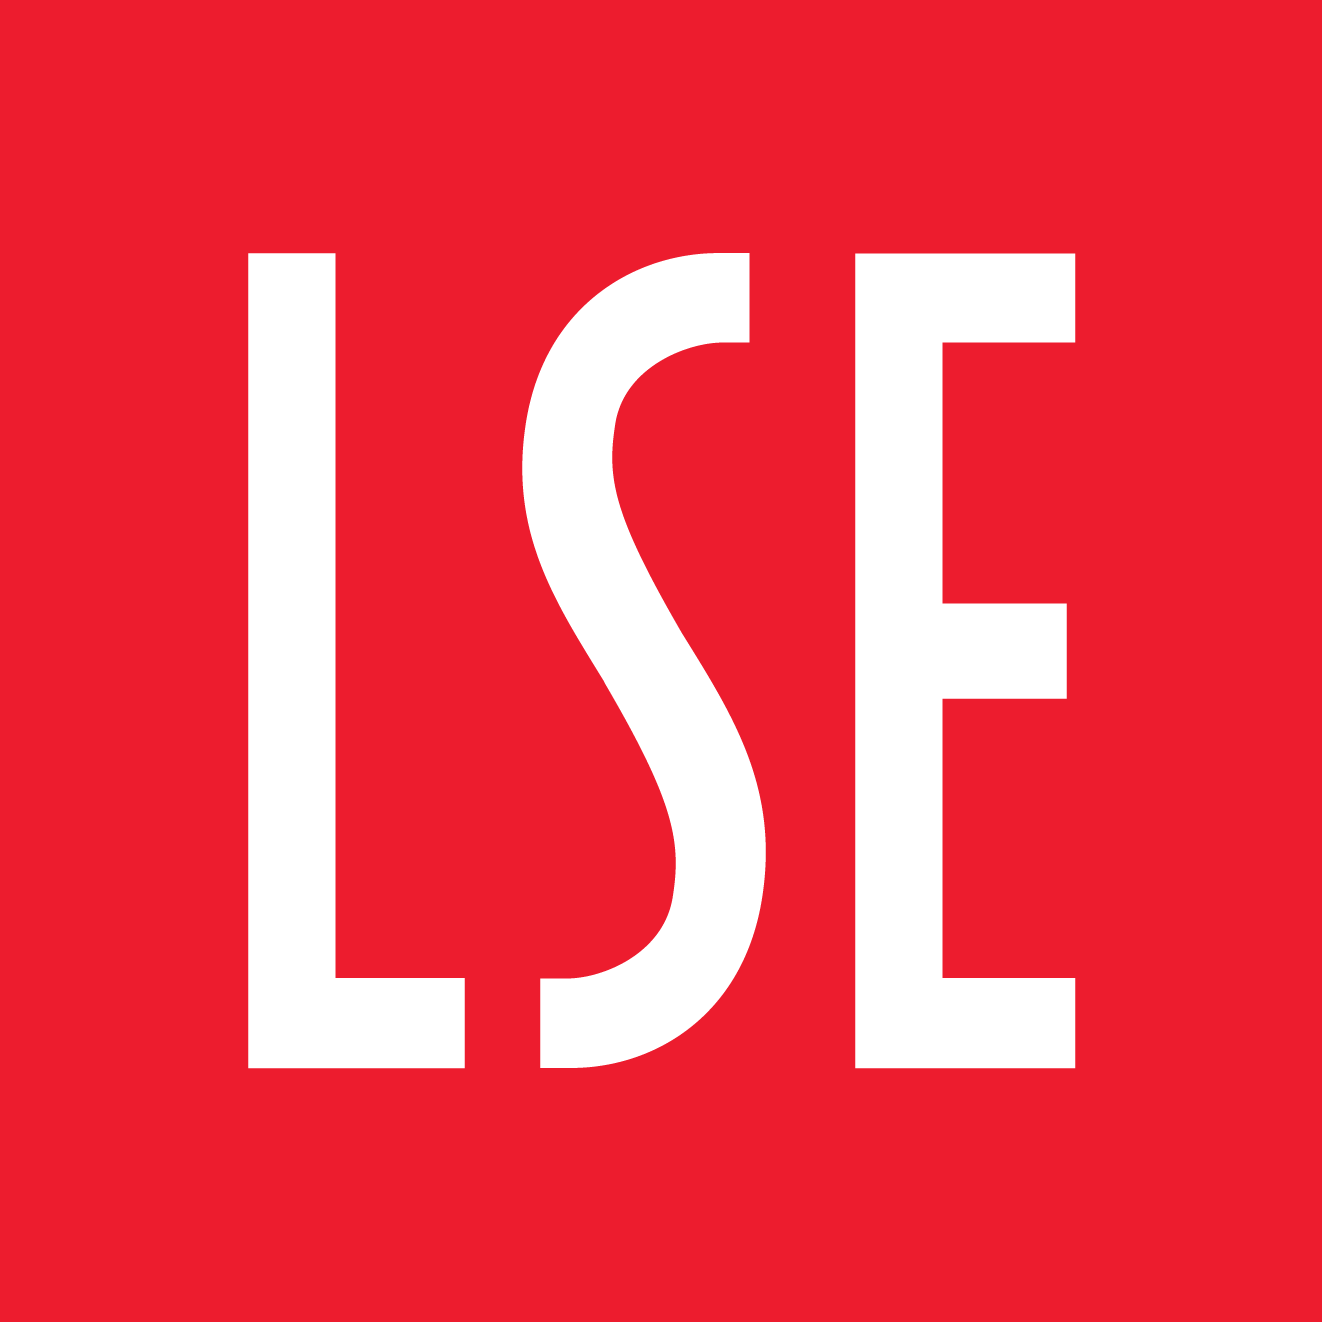 LSE2.png